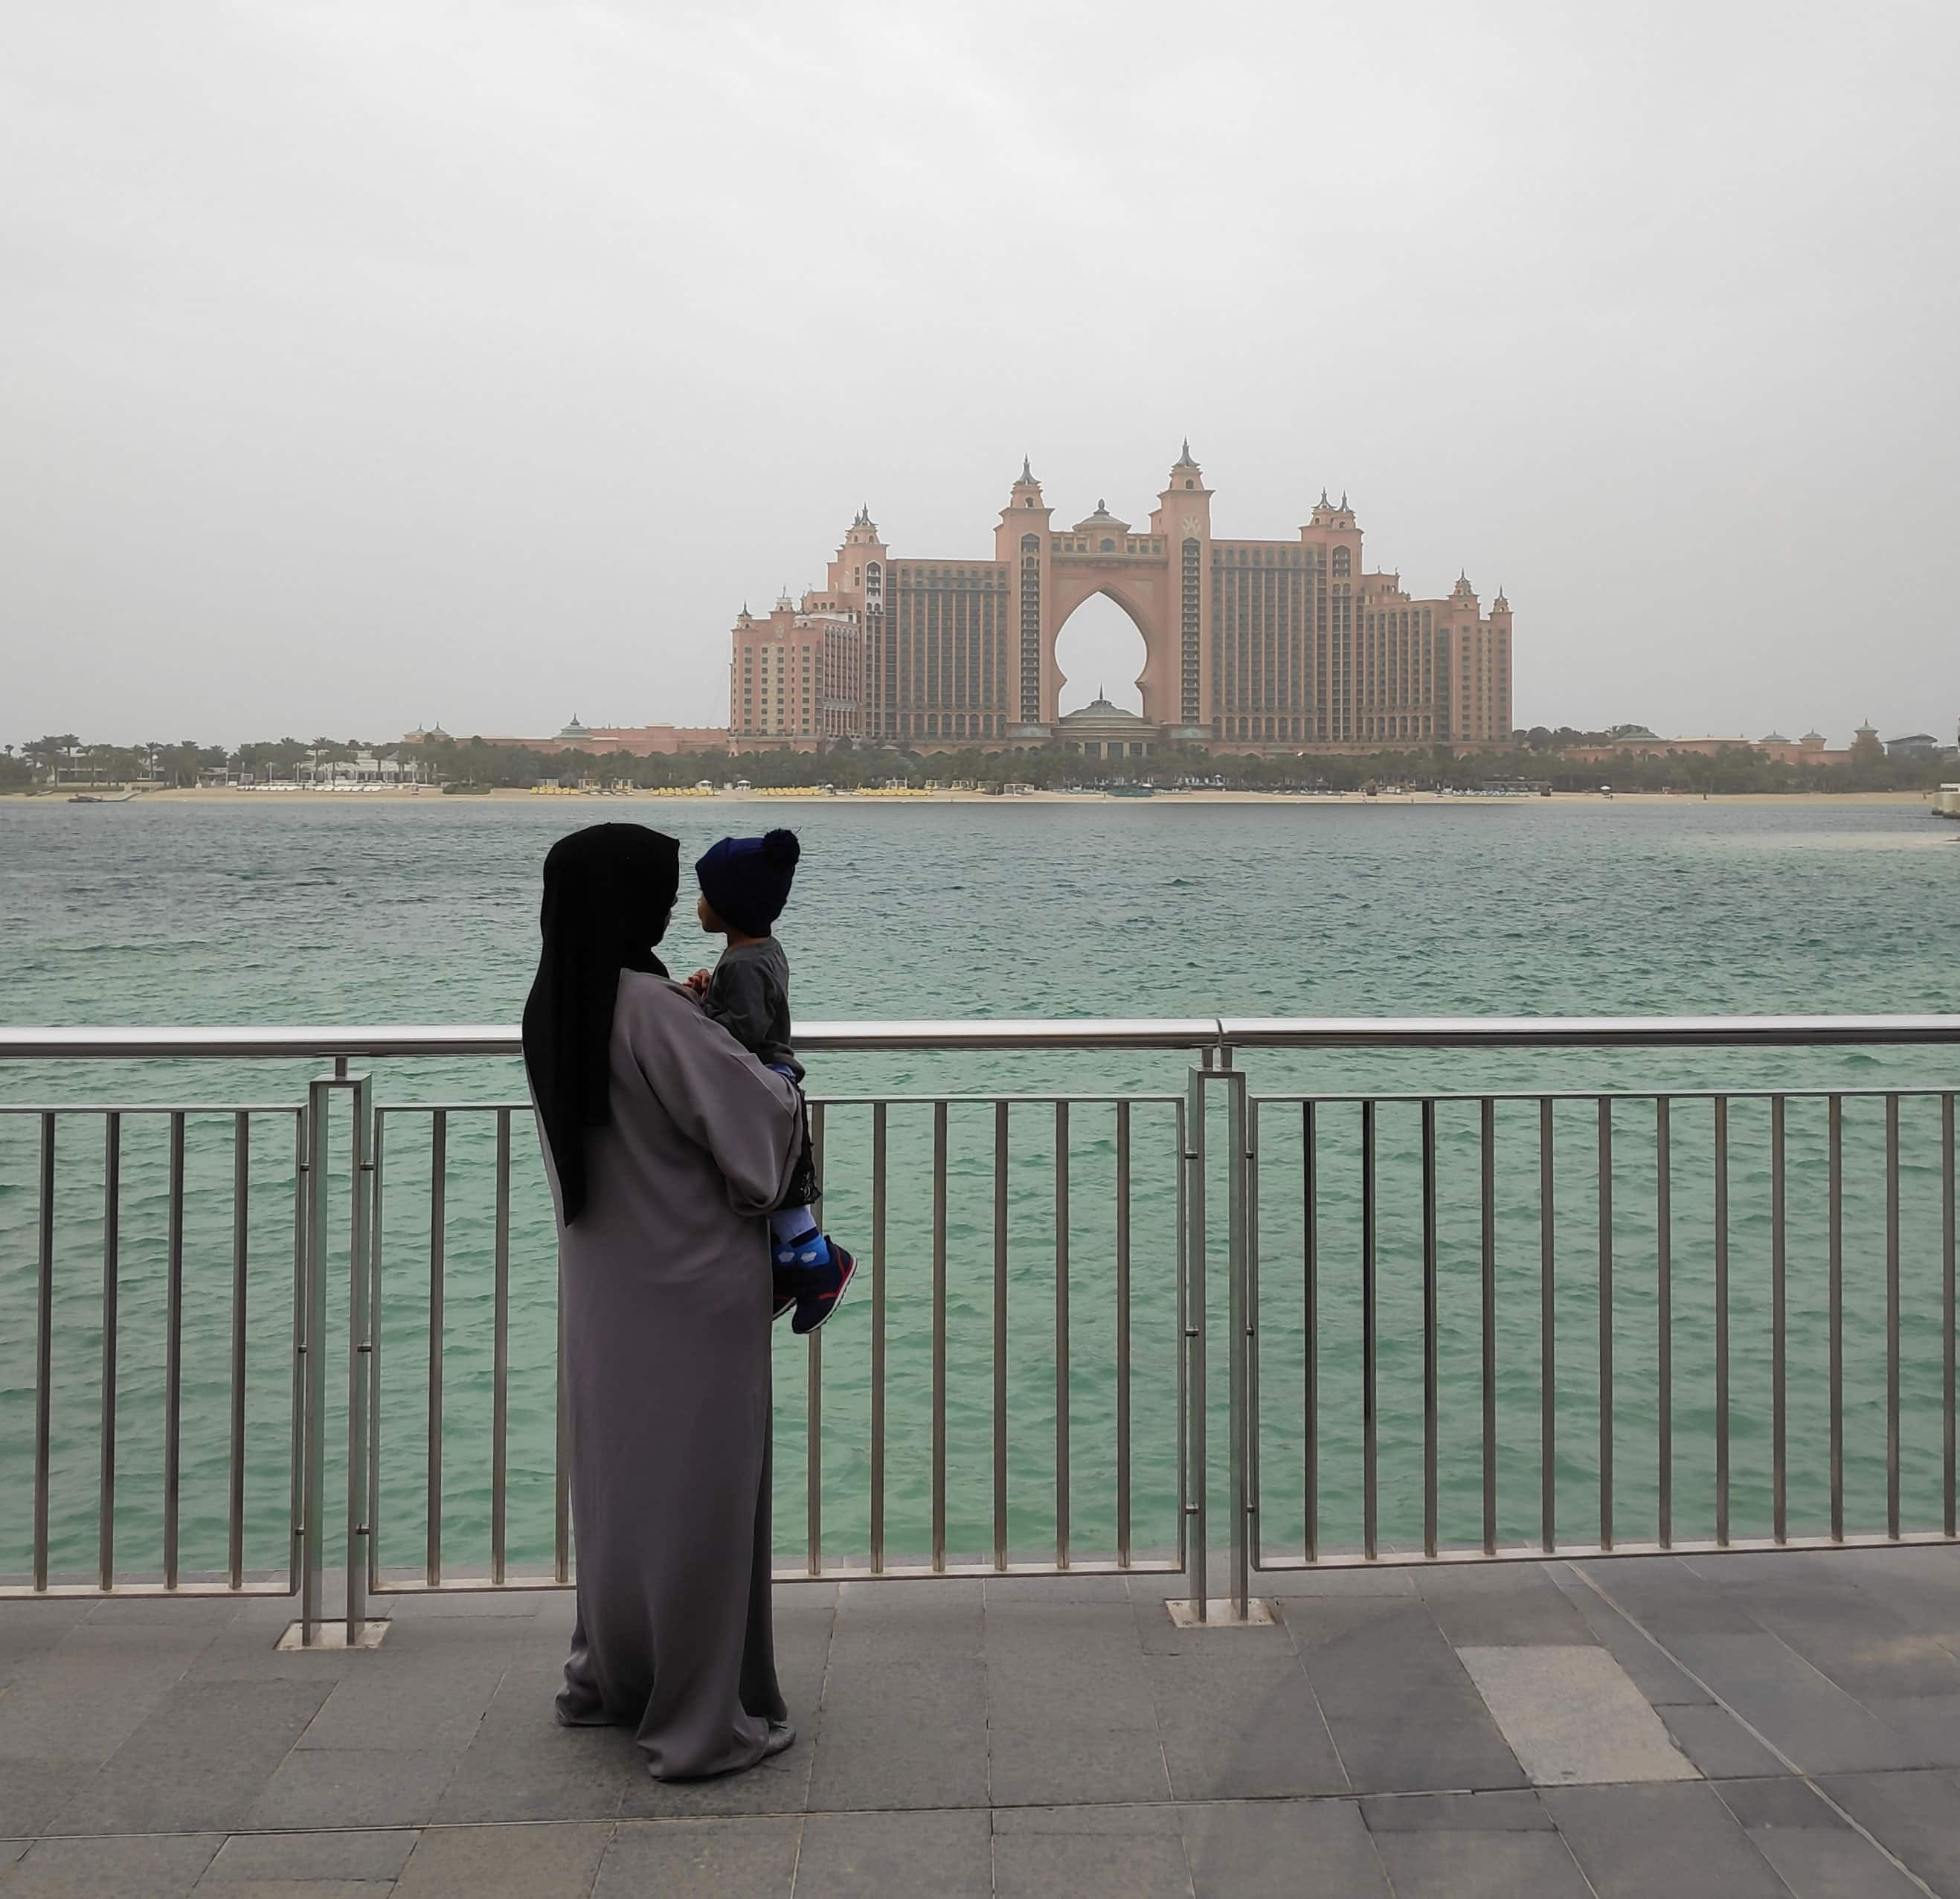 The Pointe - What is dubai famous for?